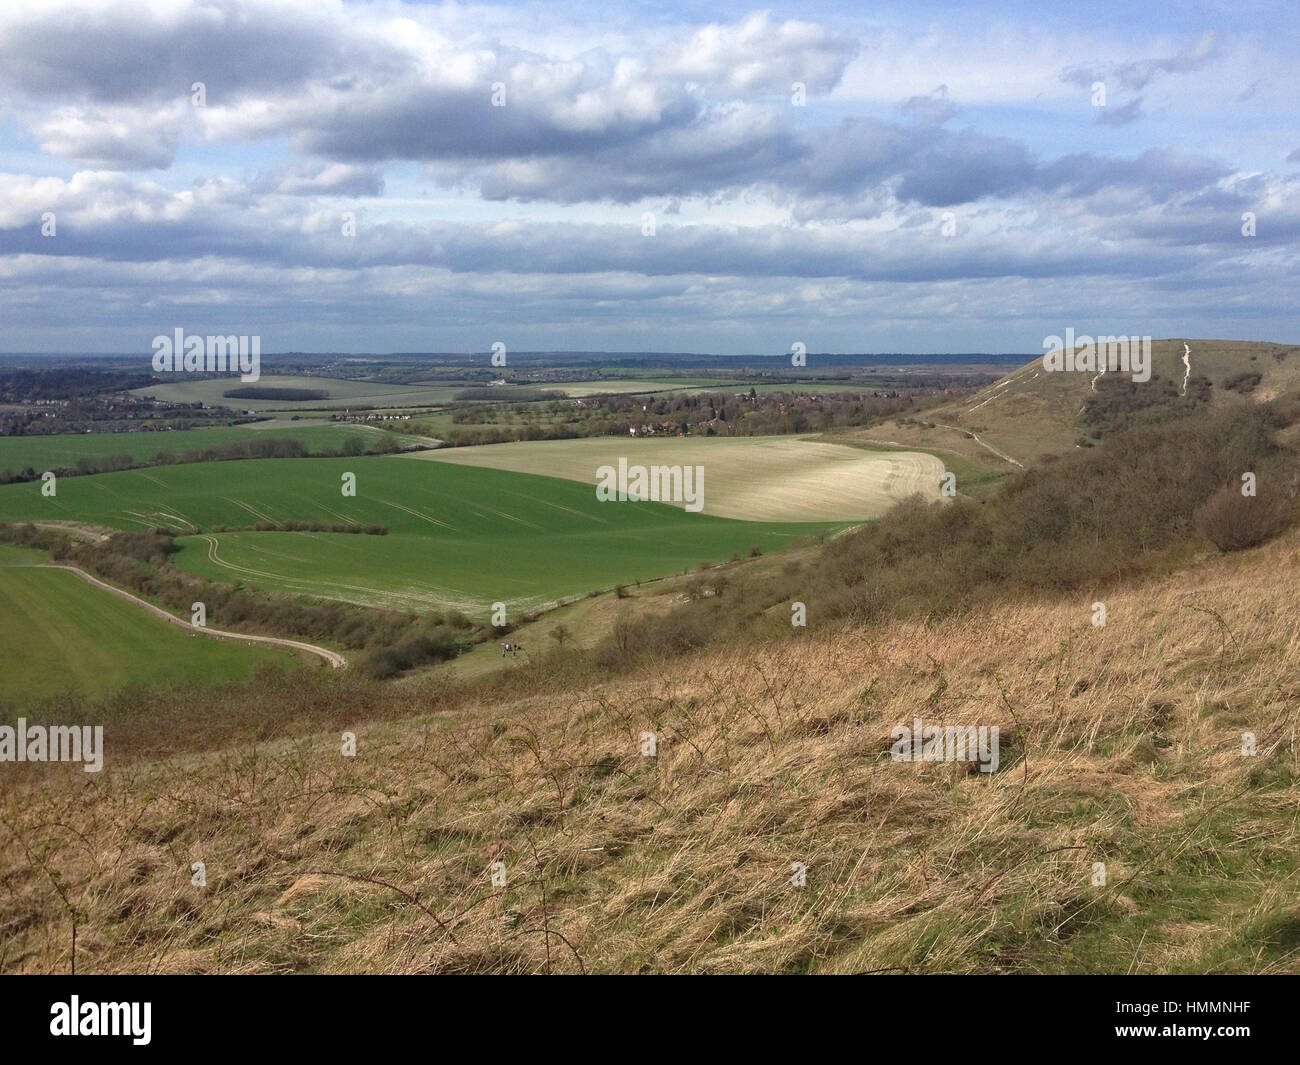 Dunstable Downs panorama, Chiltern Hills, Bedfordshire, England, UK - Stock Image